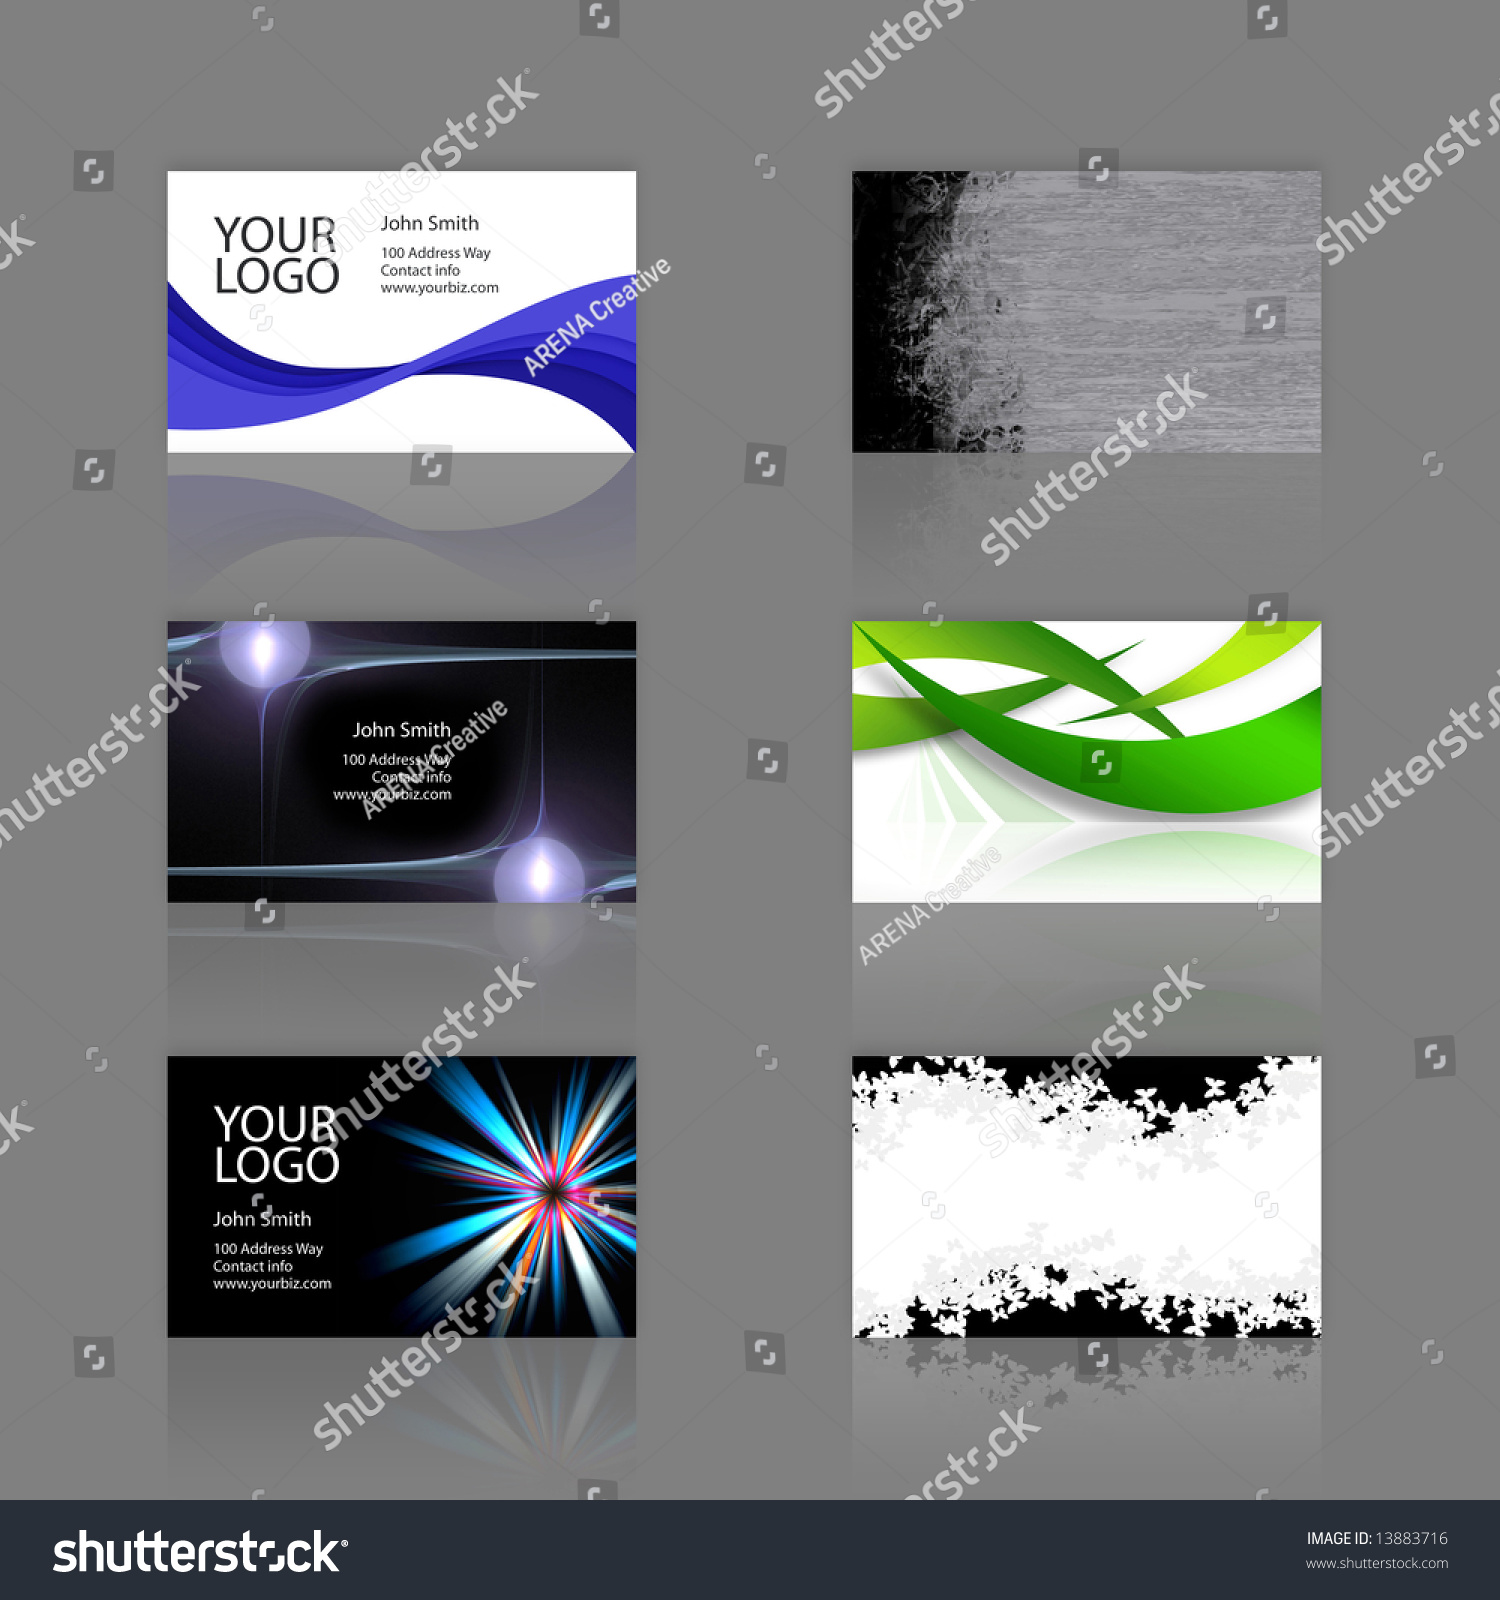 Assortment 6 modern business cards templates stock illustration an assortment of 6 modern business cards templates that are print ready and fully customizable reheart Images